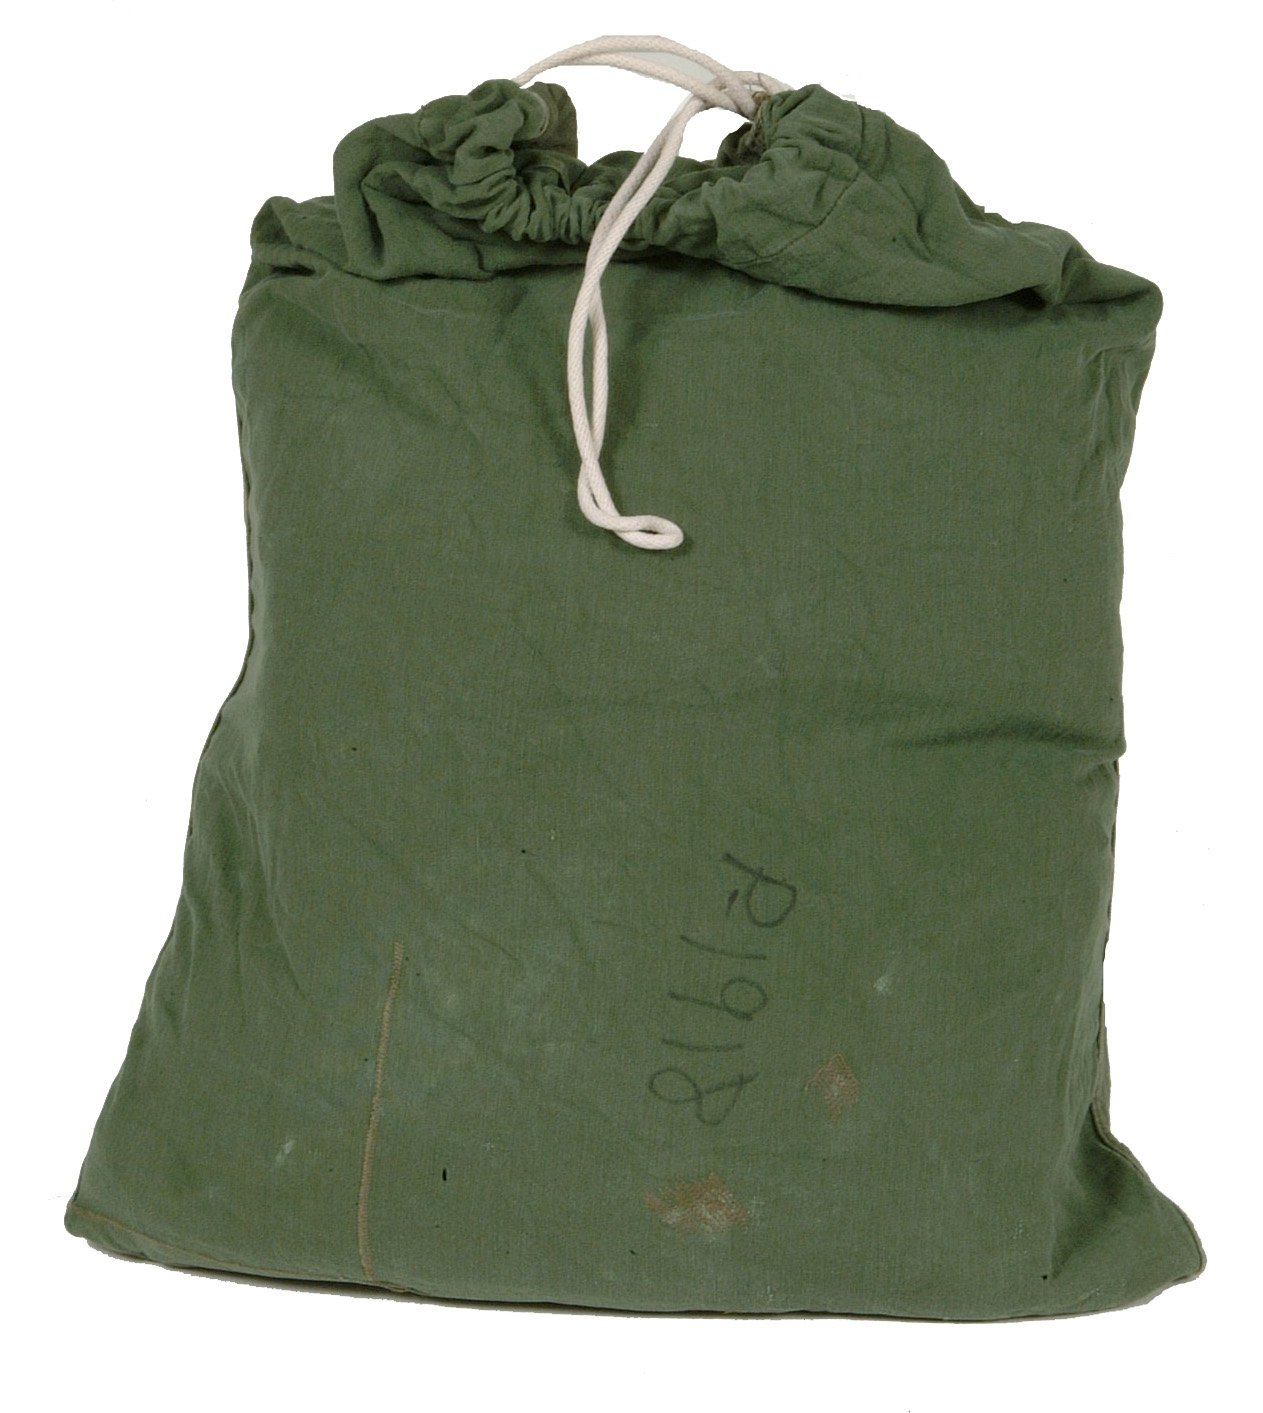 Military Outdoor Clothing Previously Issued US GI OD Green Cotton Laundry Barracks Bag